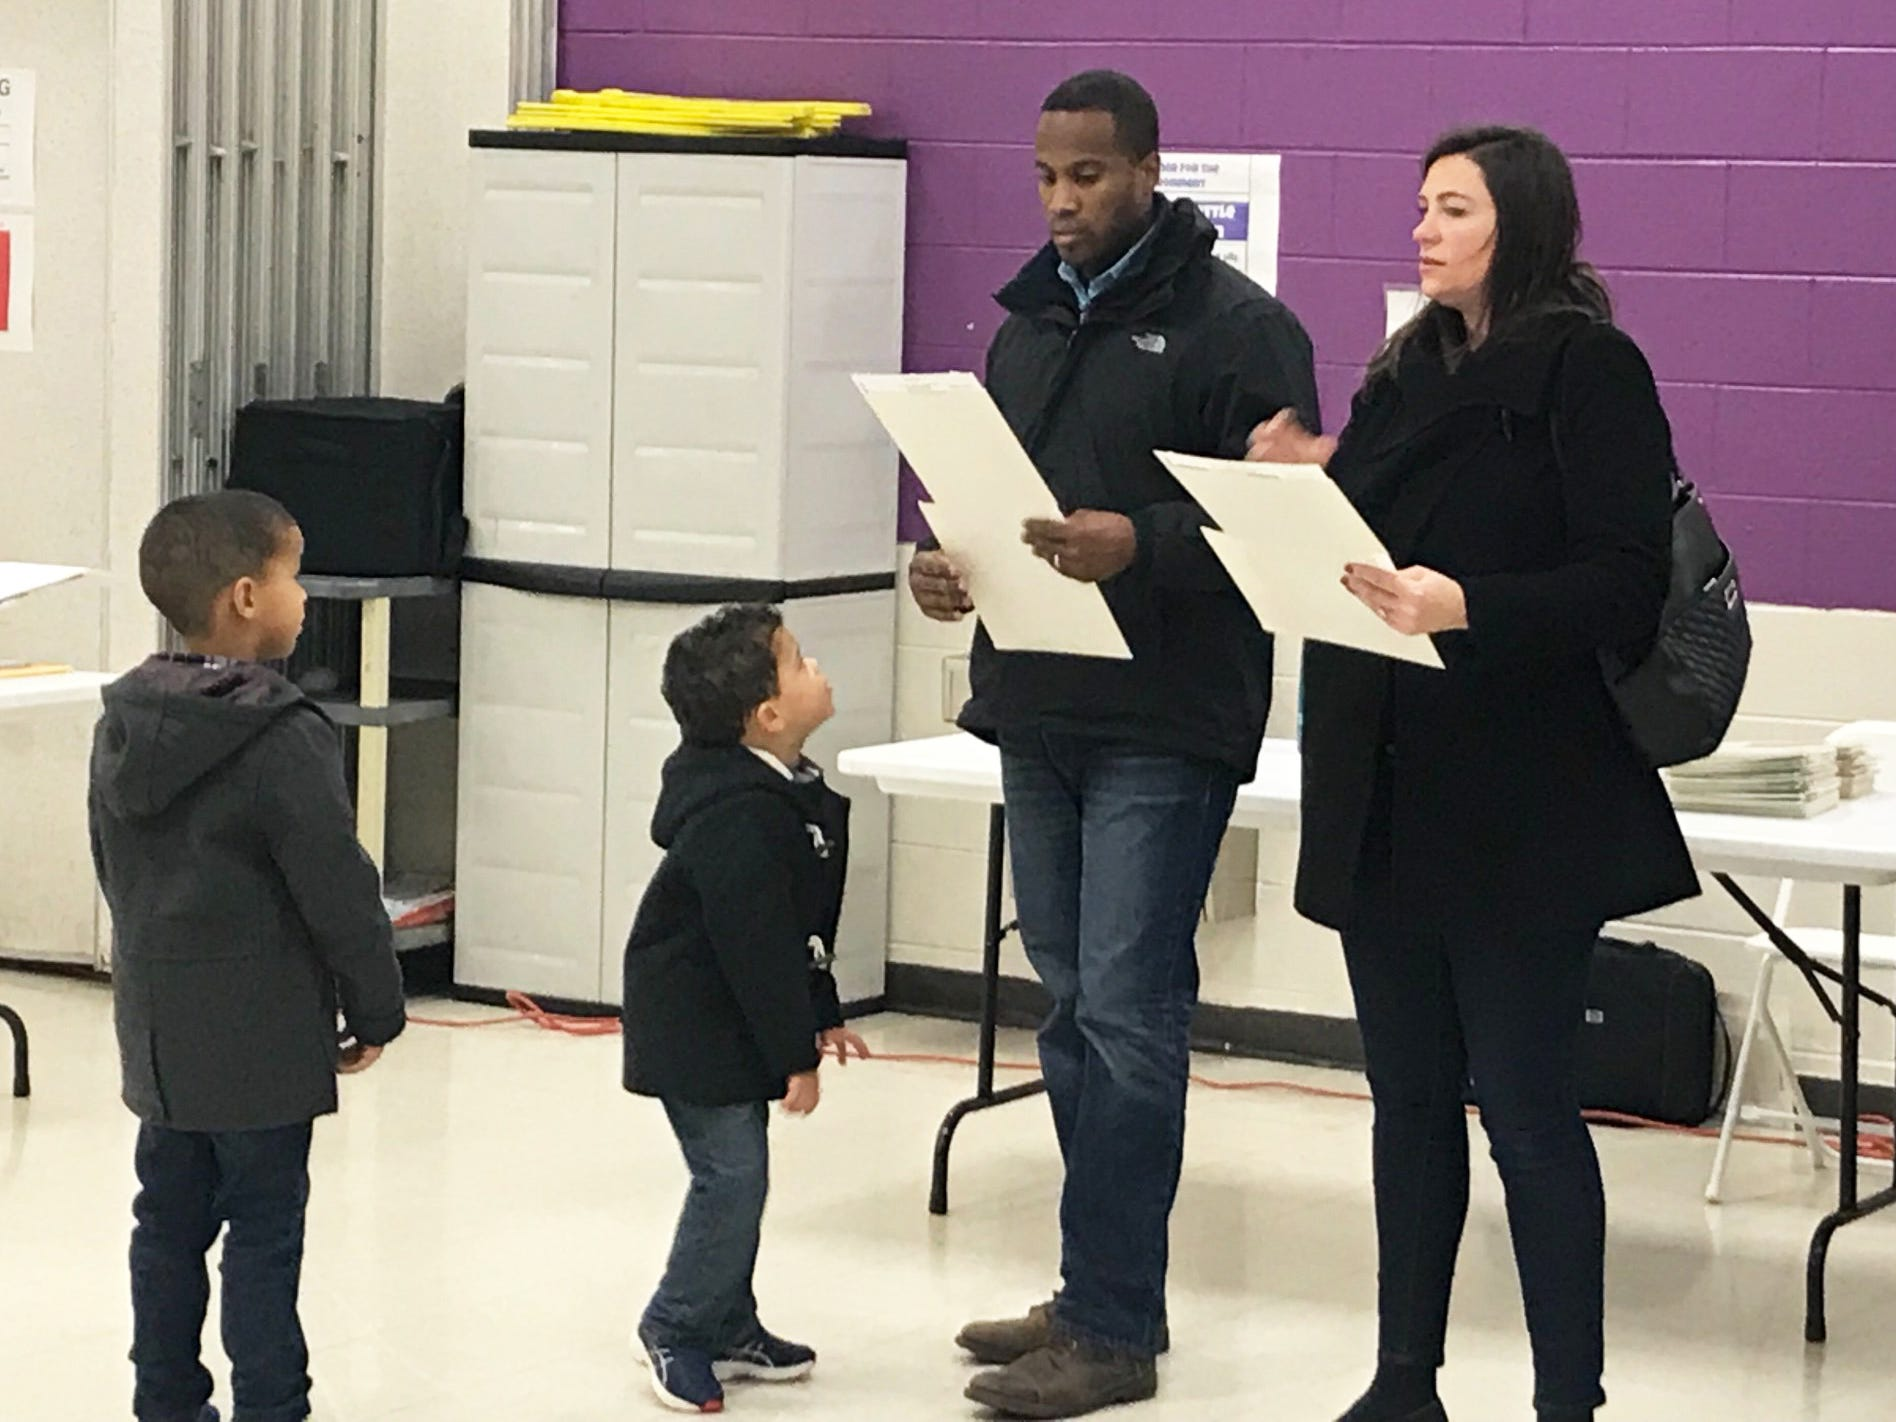 Republican U.S. Senate candidate John James votes with his wife Elizabeth and two sons Tuesday morning in Farmington Hills.